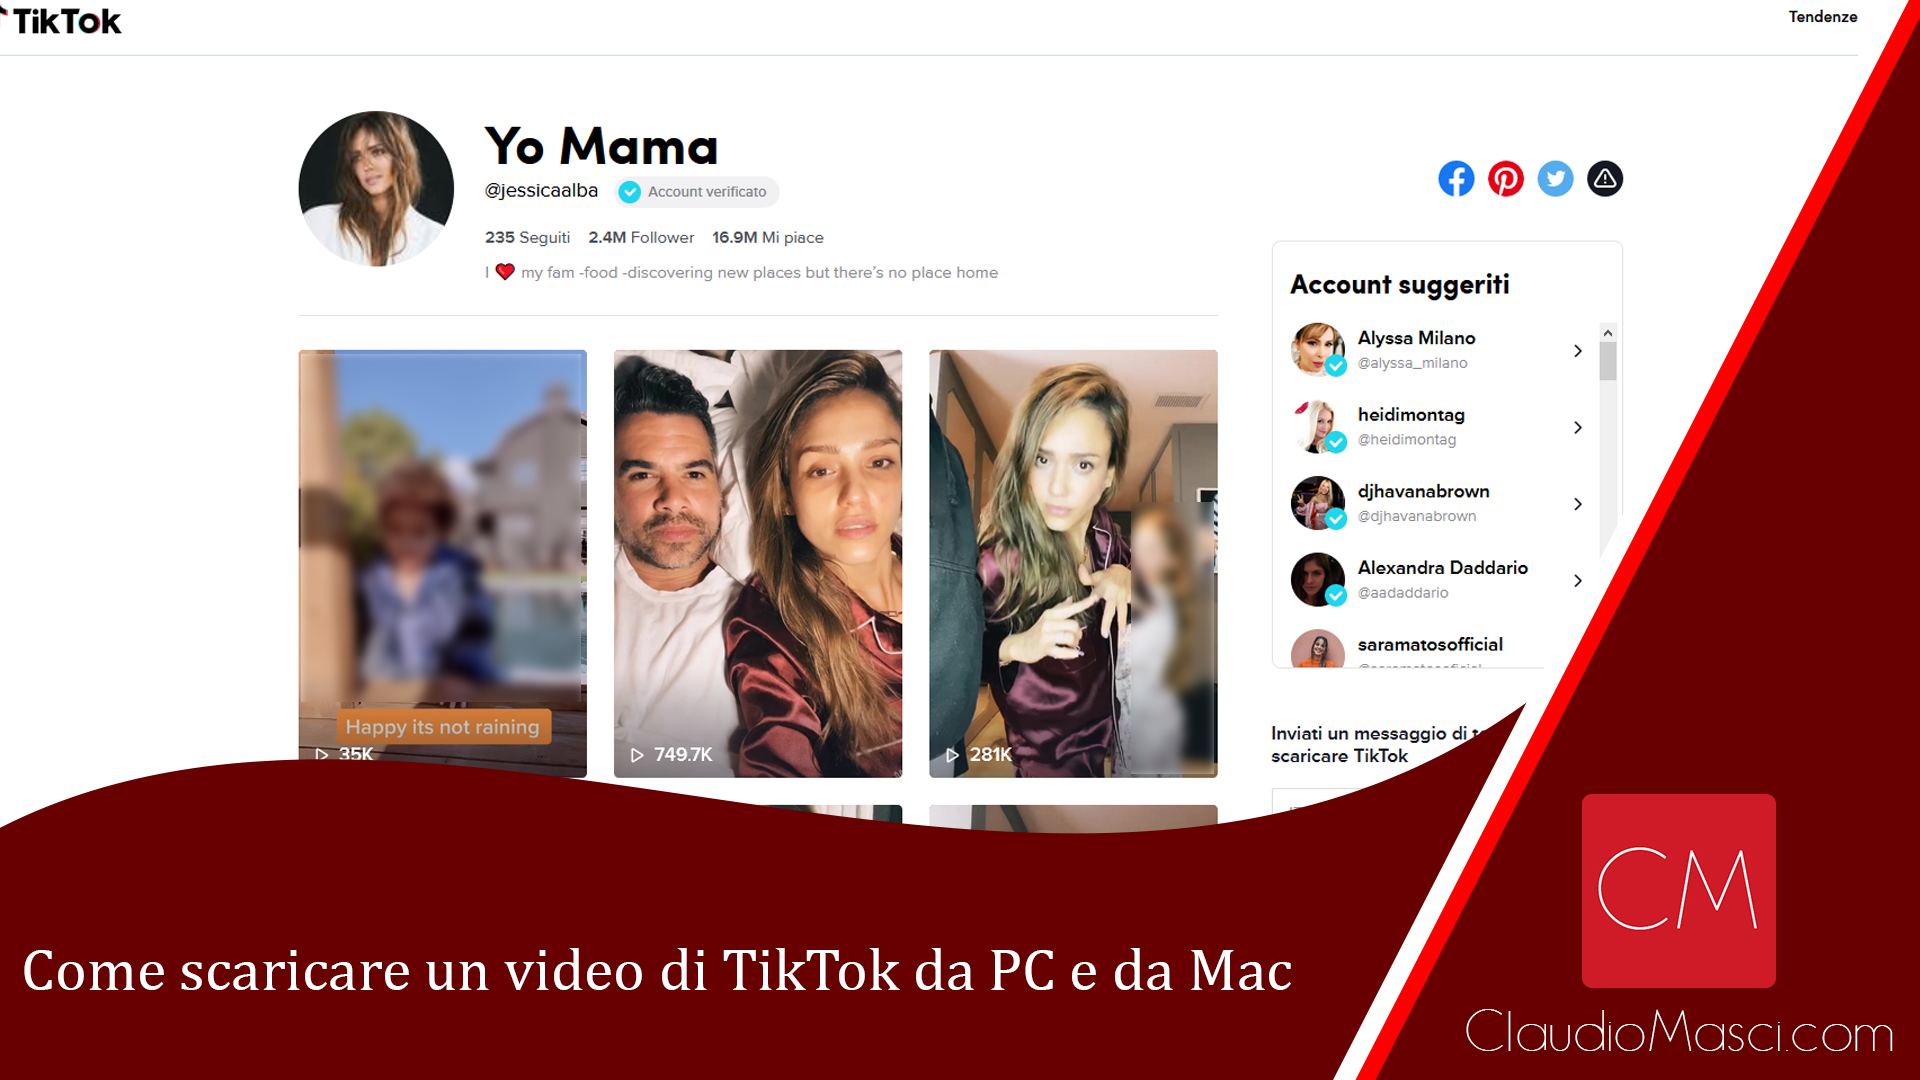 Come scaricare un video di TikTok da PC e da Mac